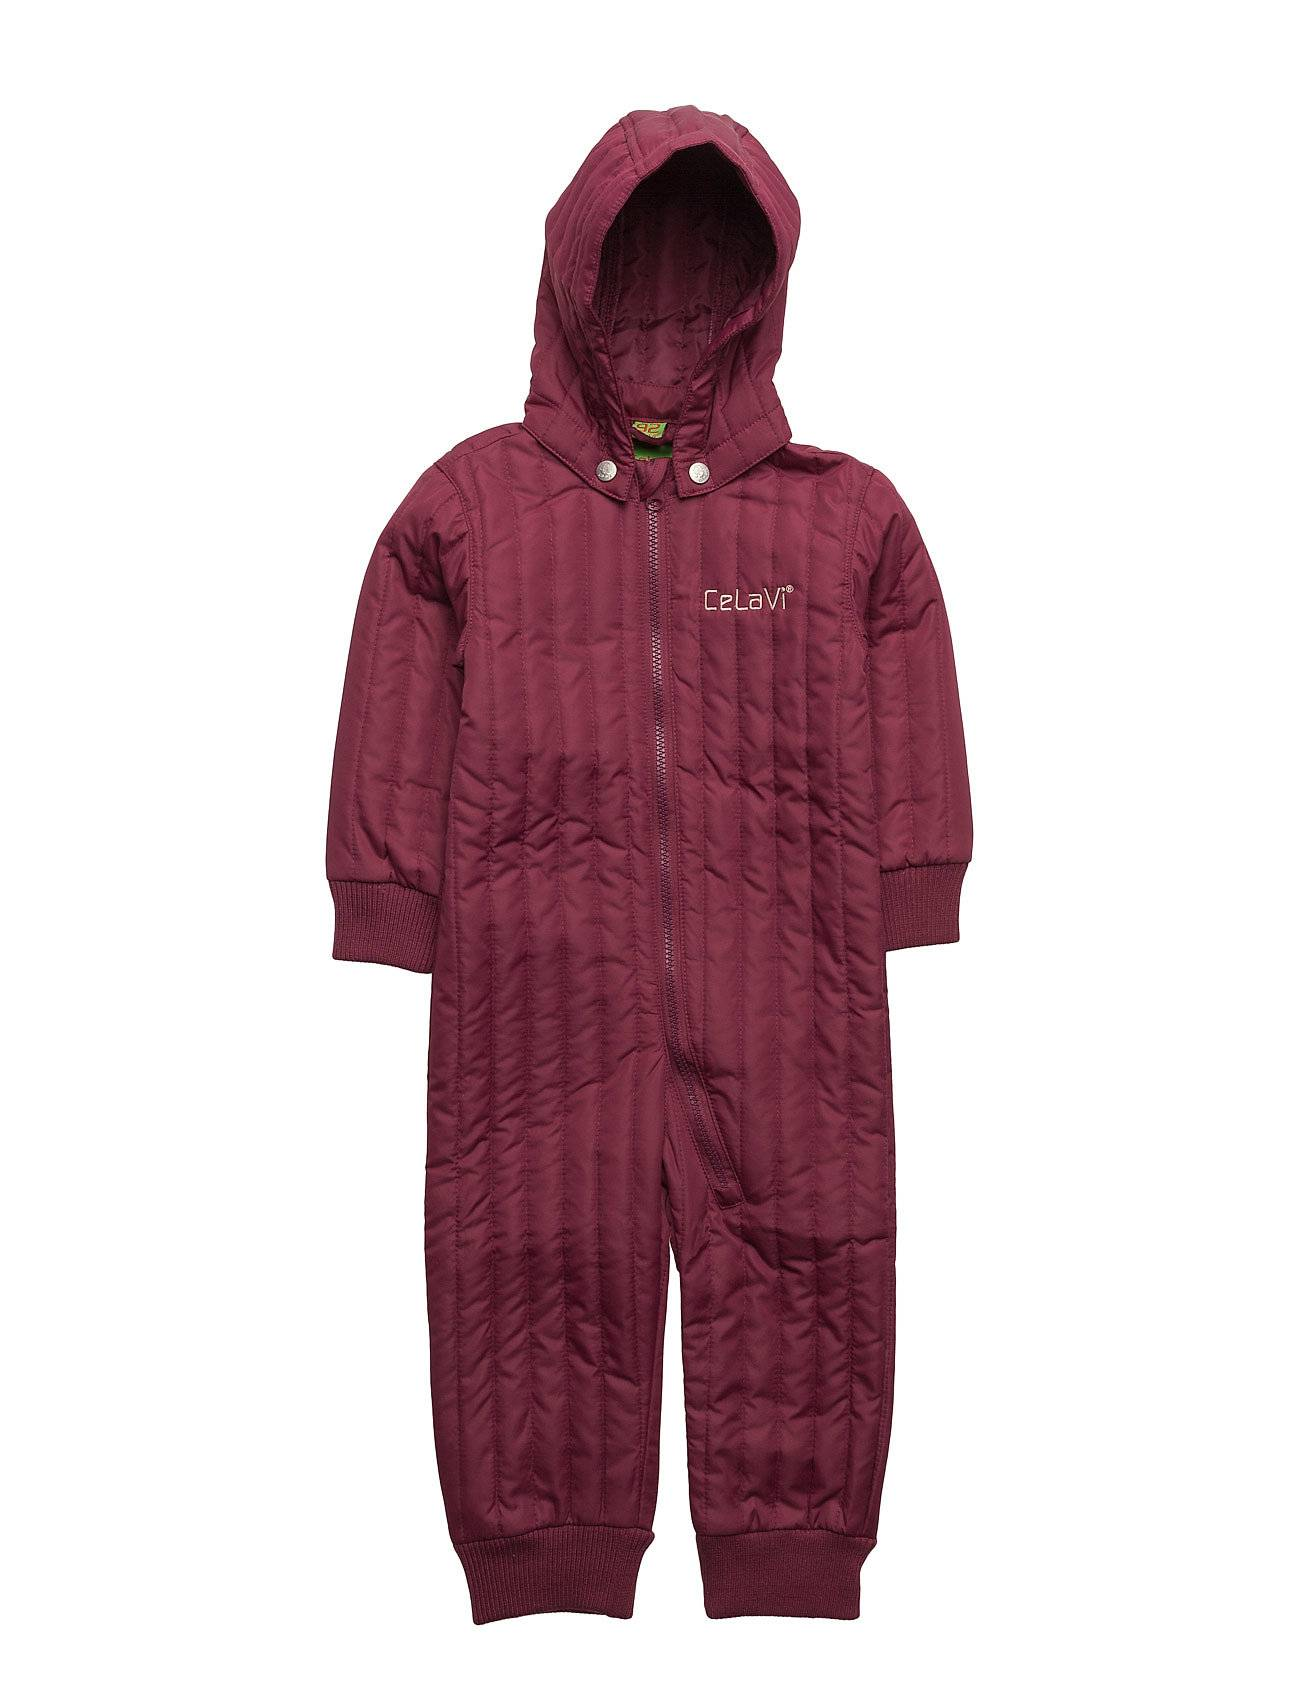 CeLaVi Thermal Quilt Suit -Solid